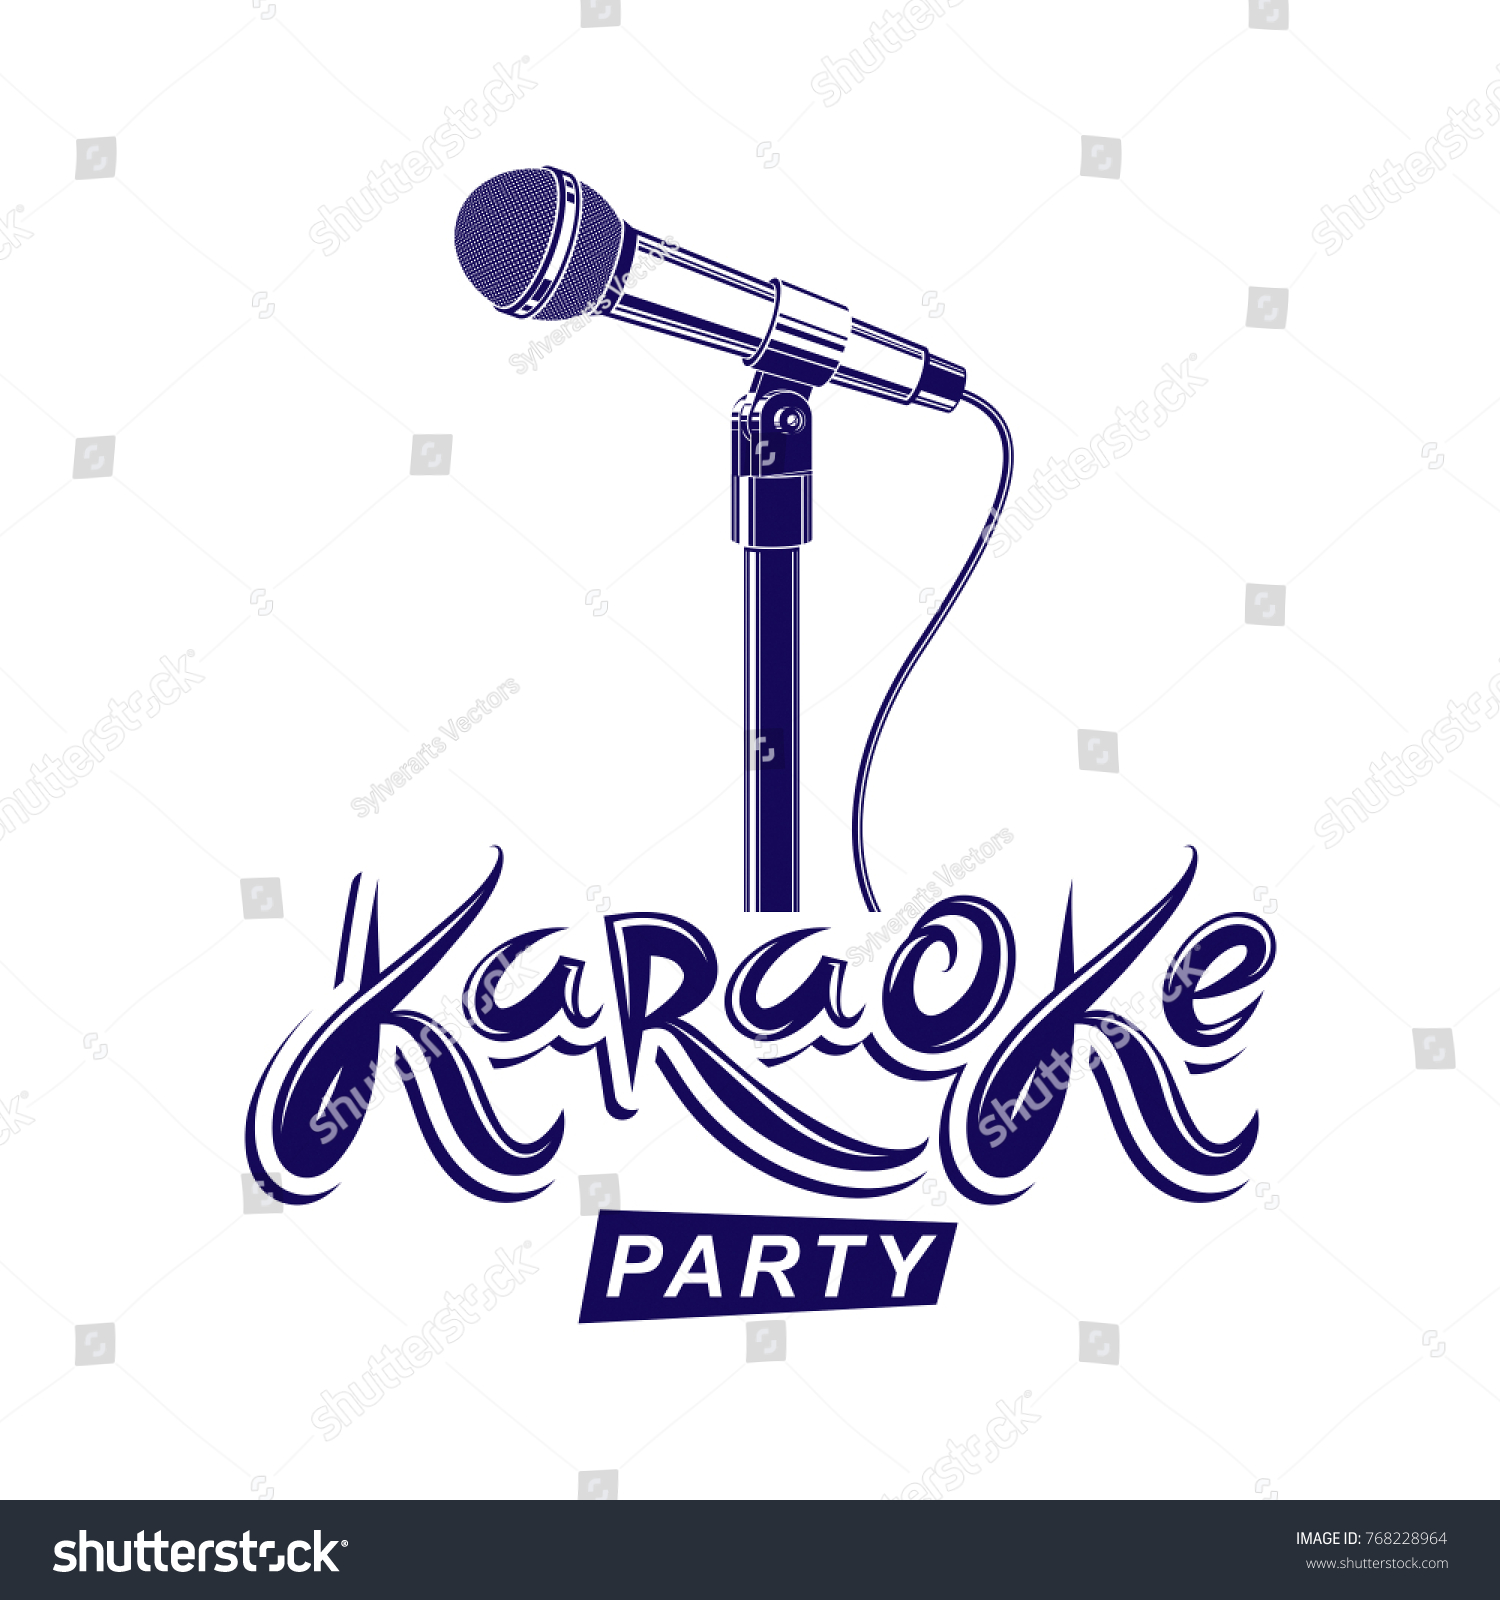 Karaoke Party Invitation Choice Image - Party Invitations Ideas